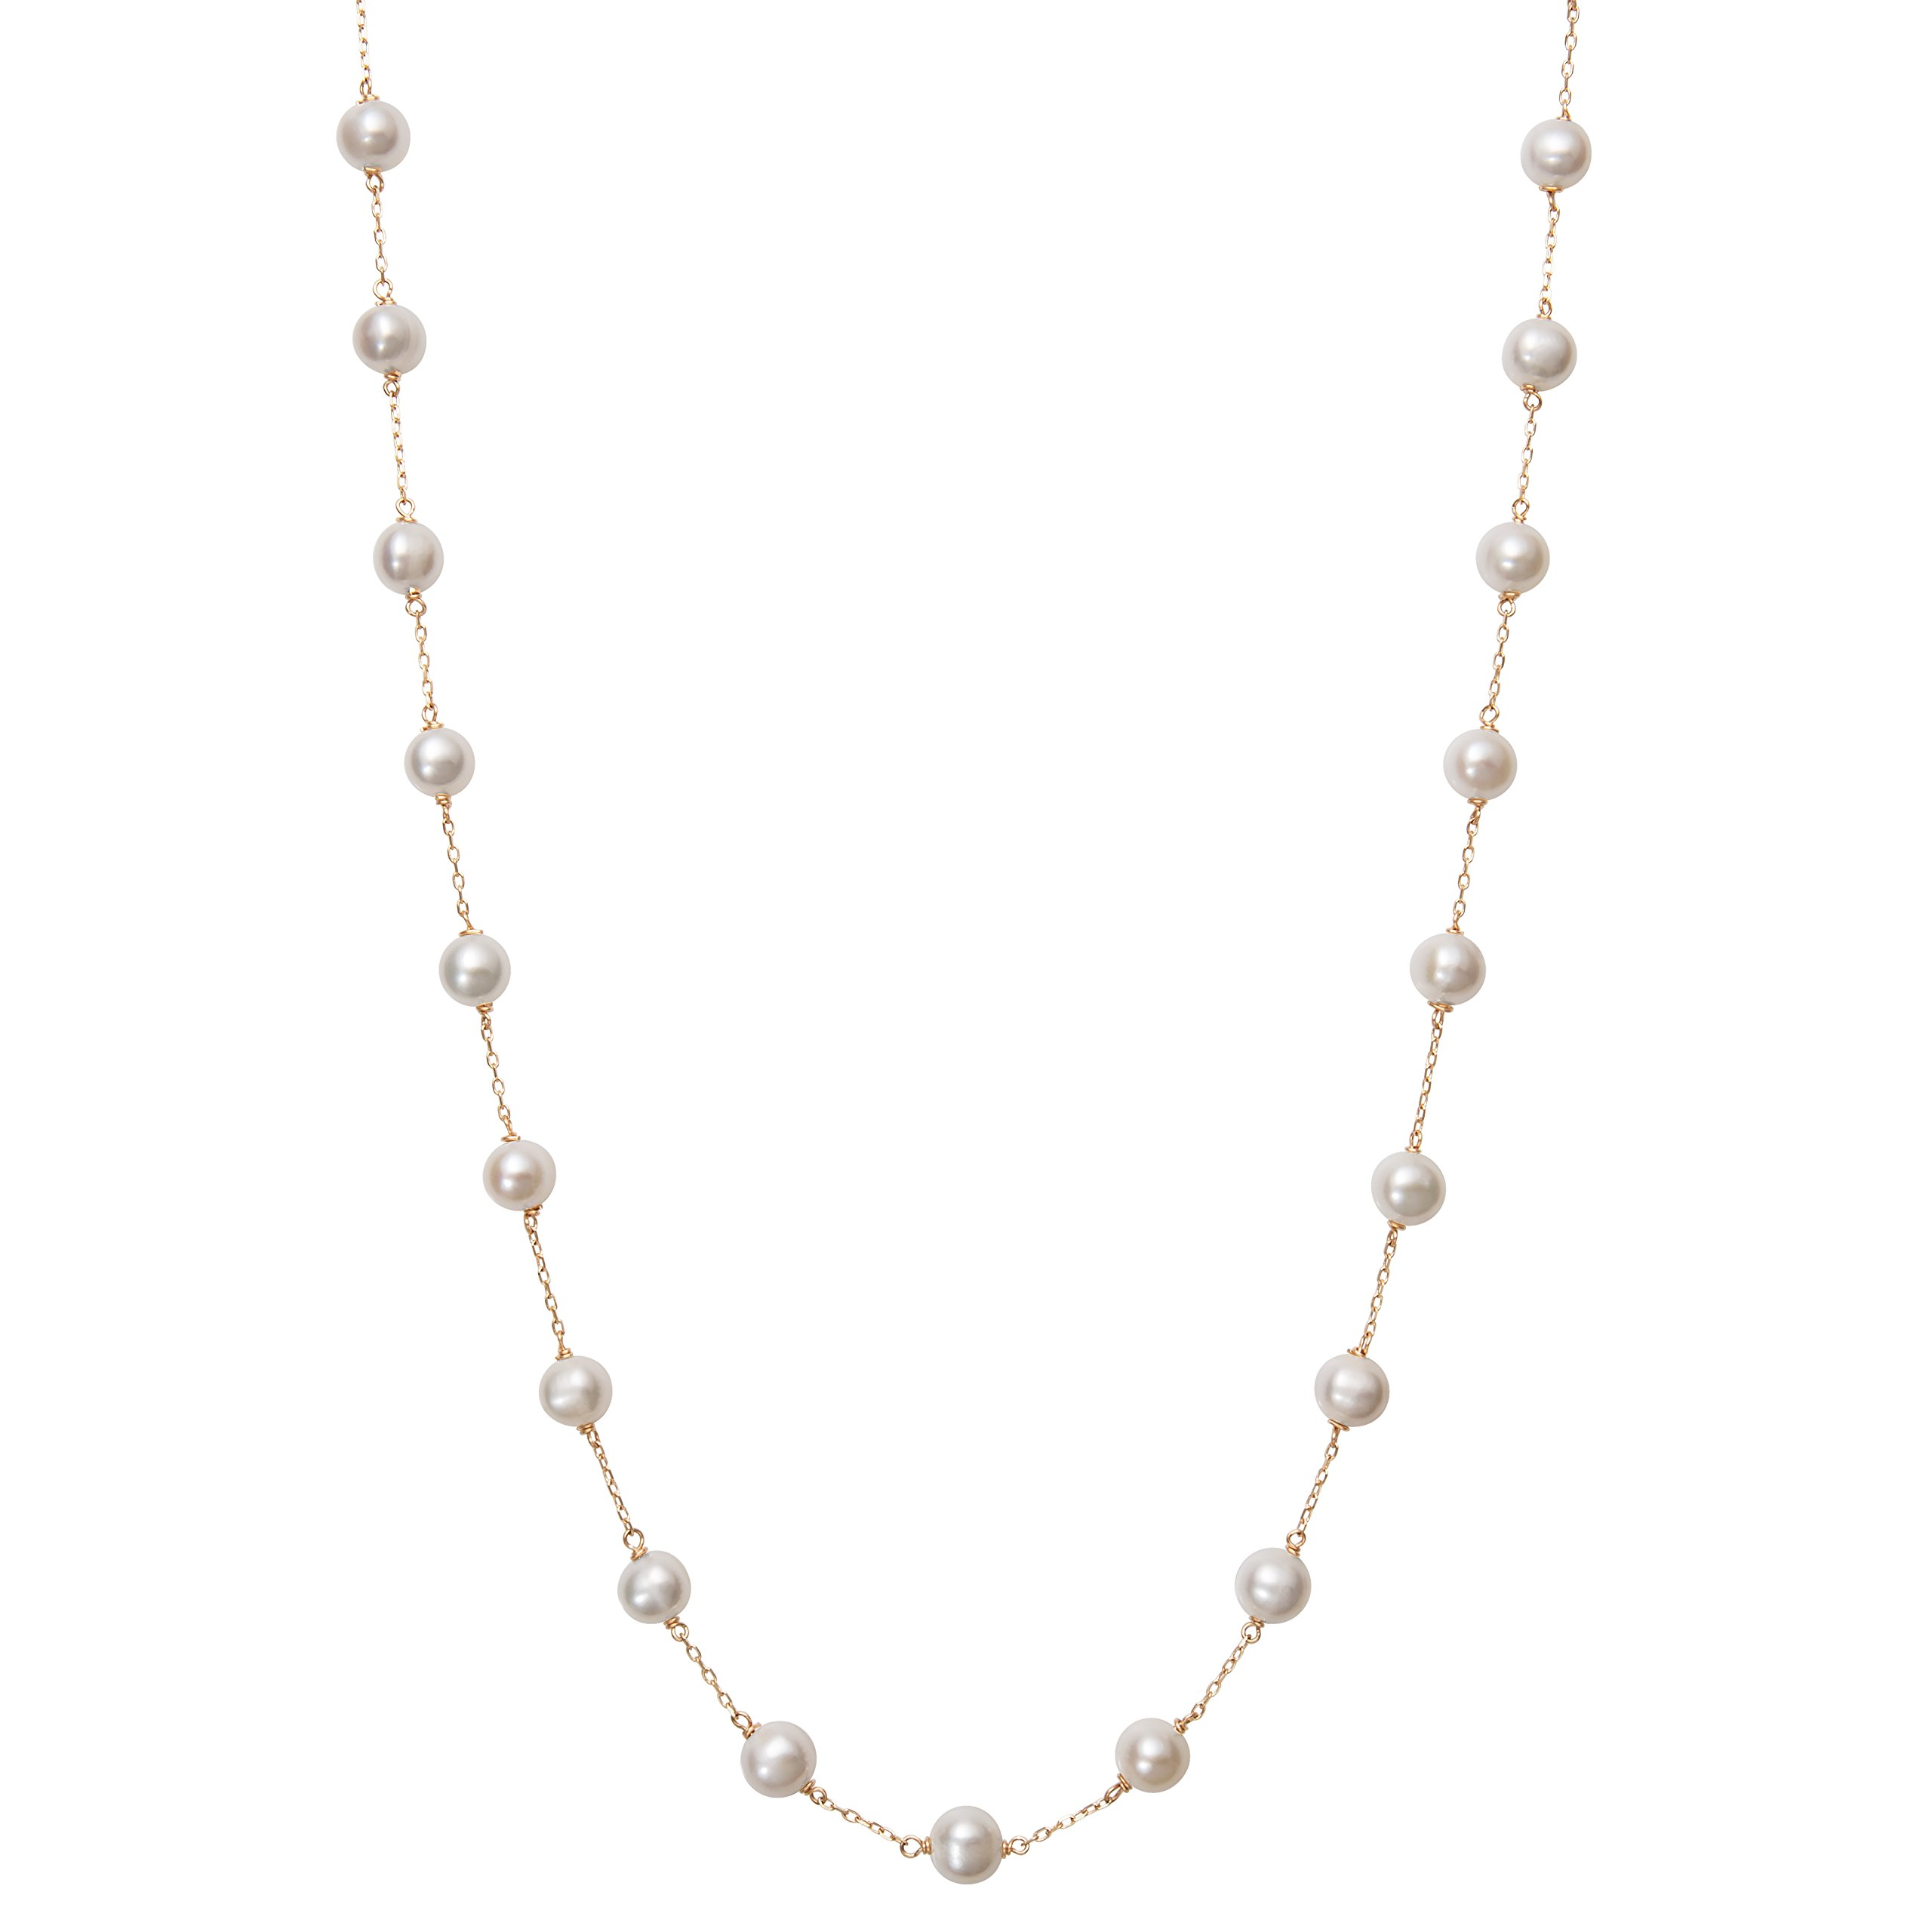 10K Yellow Gold Freshwater Cultured Pearl Station Necklace, 18''